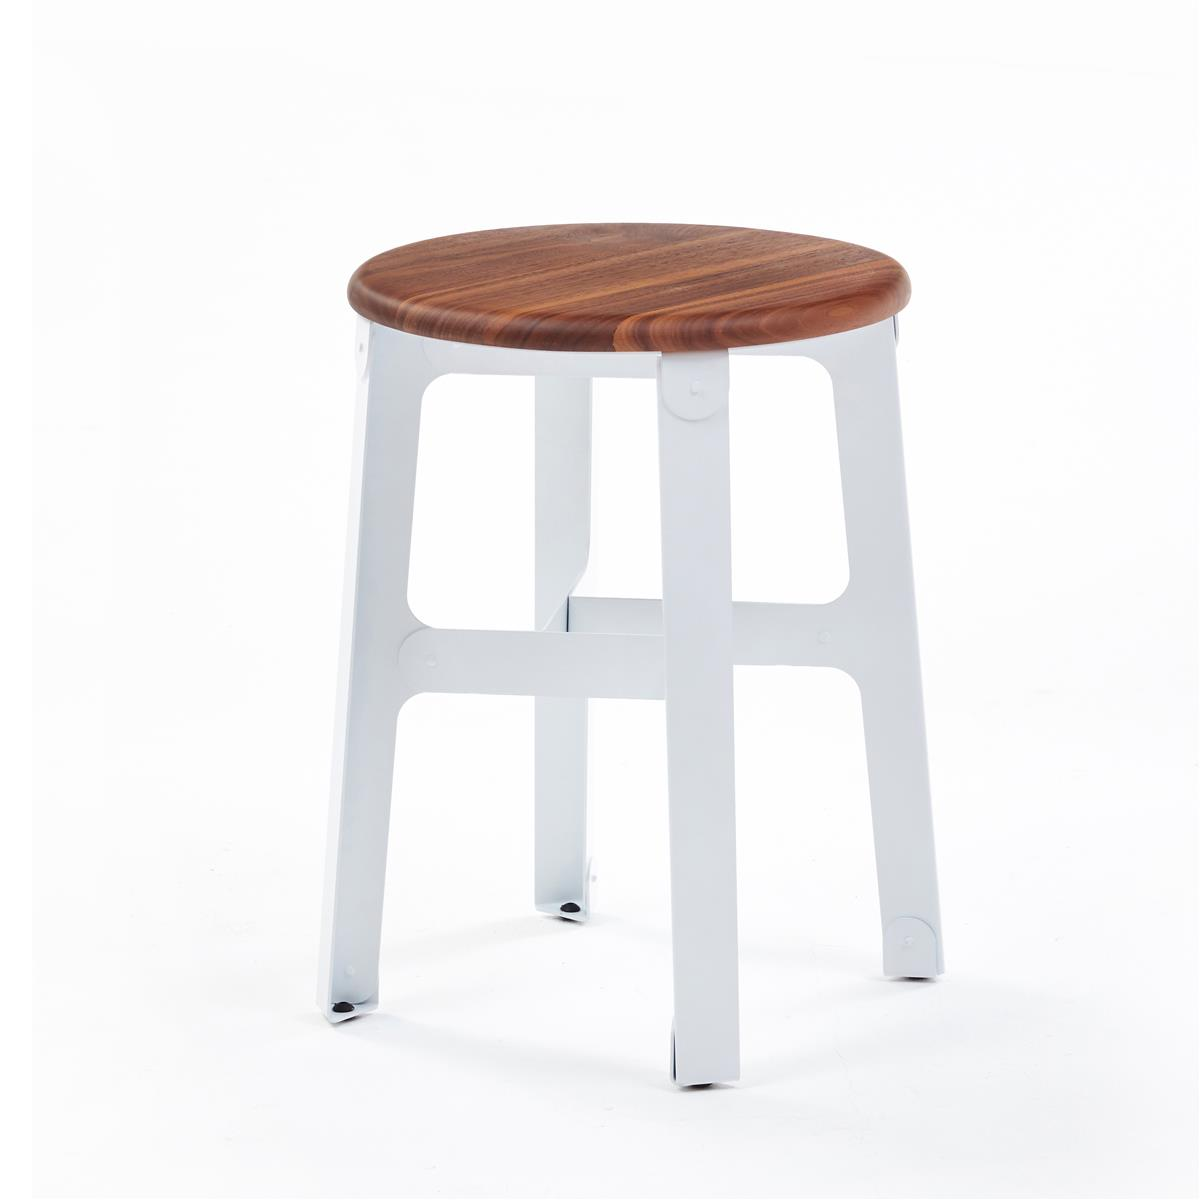 Construct stool H45 - Walnut & Signal White